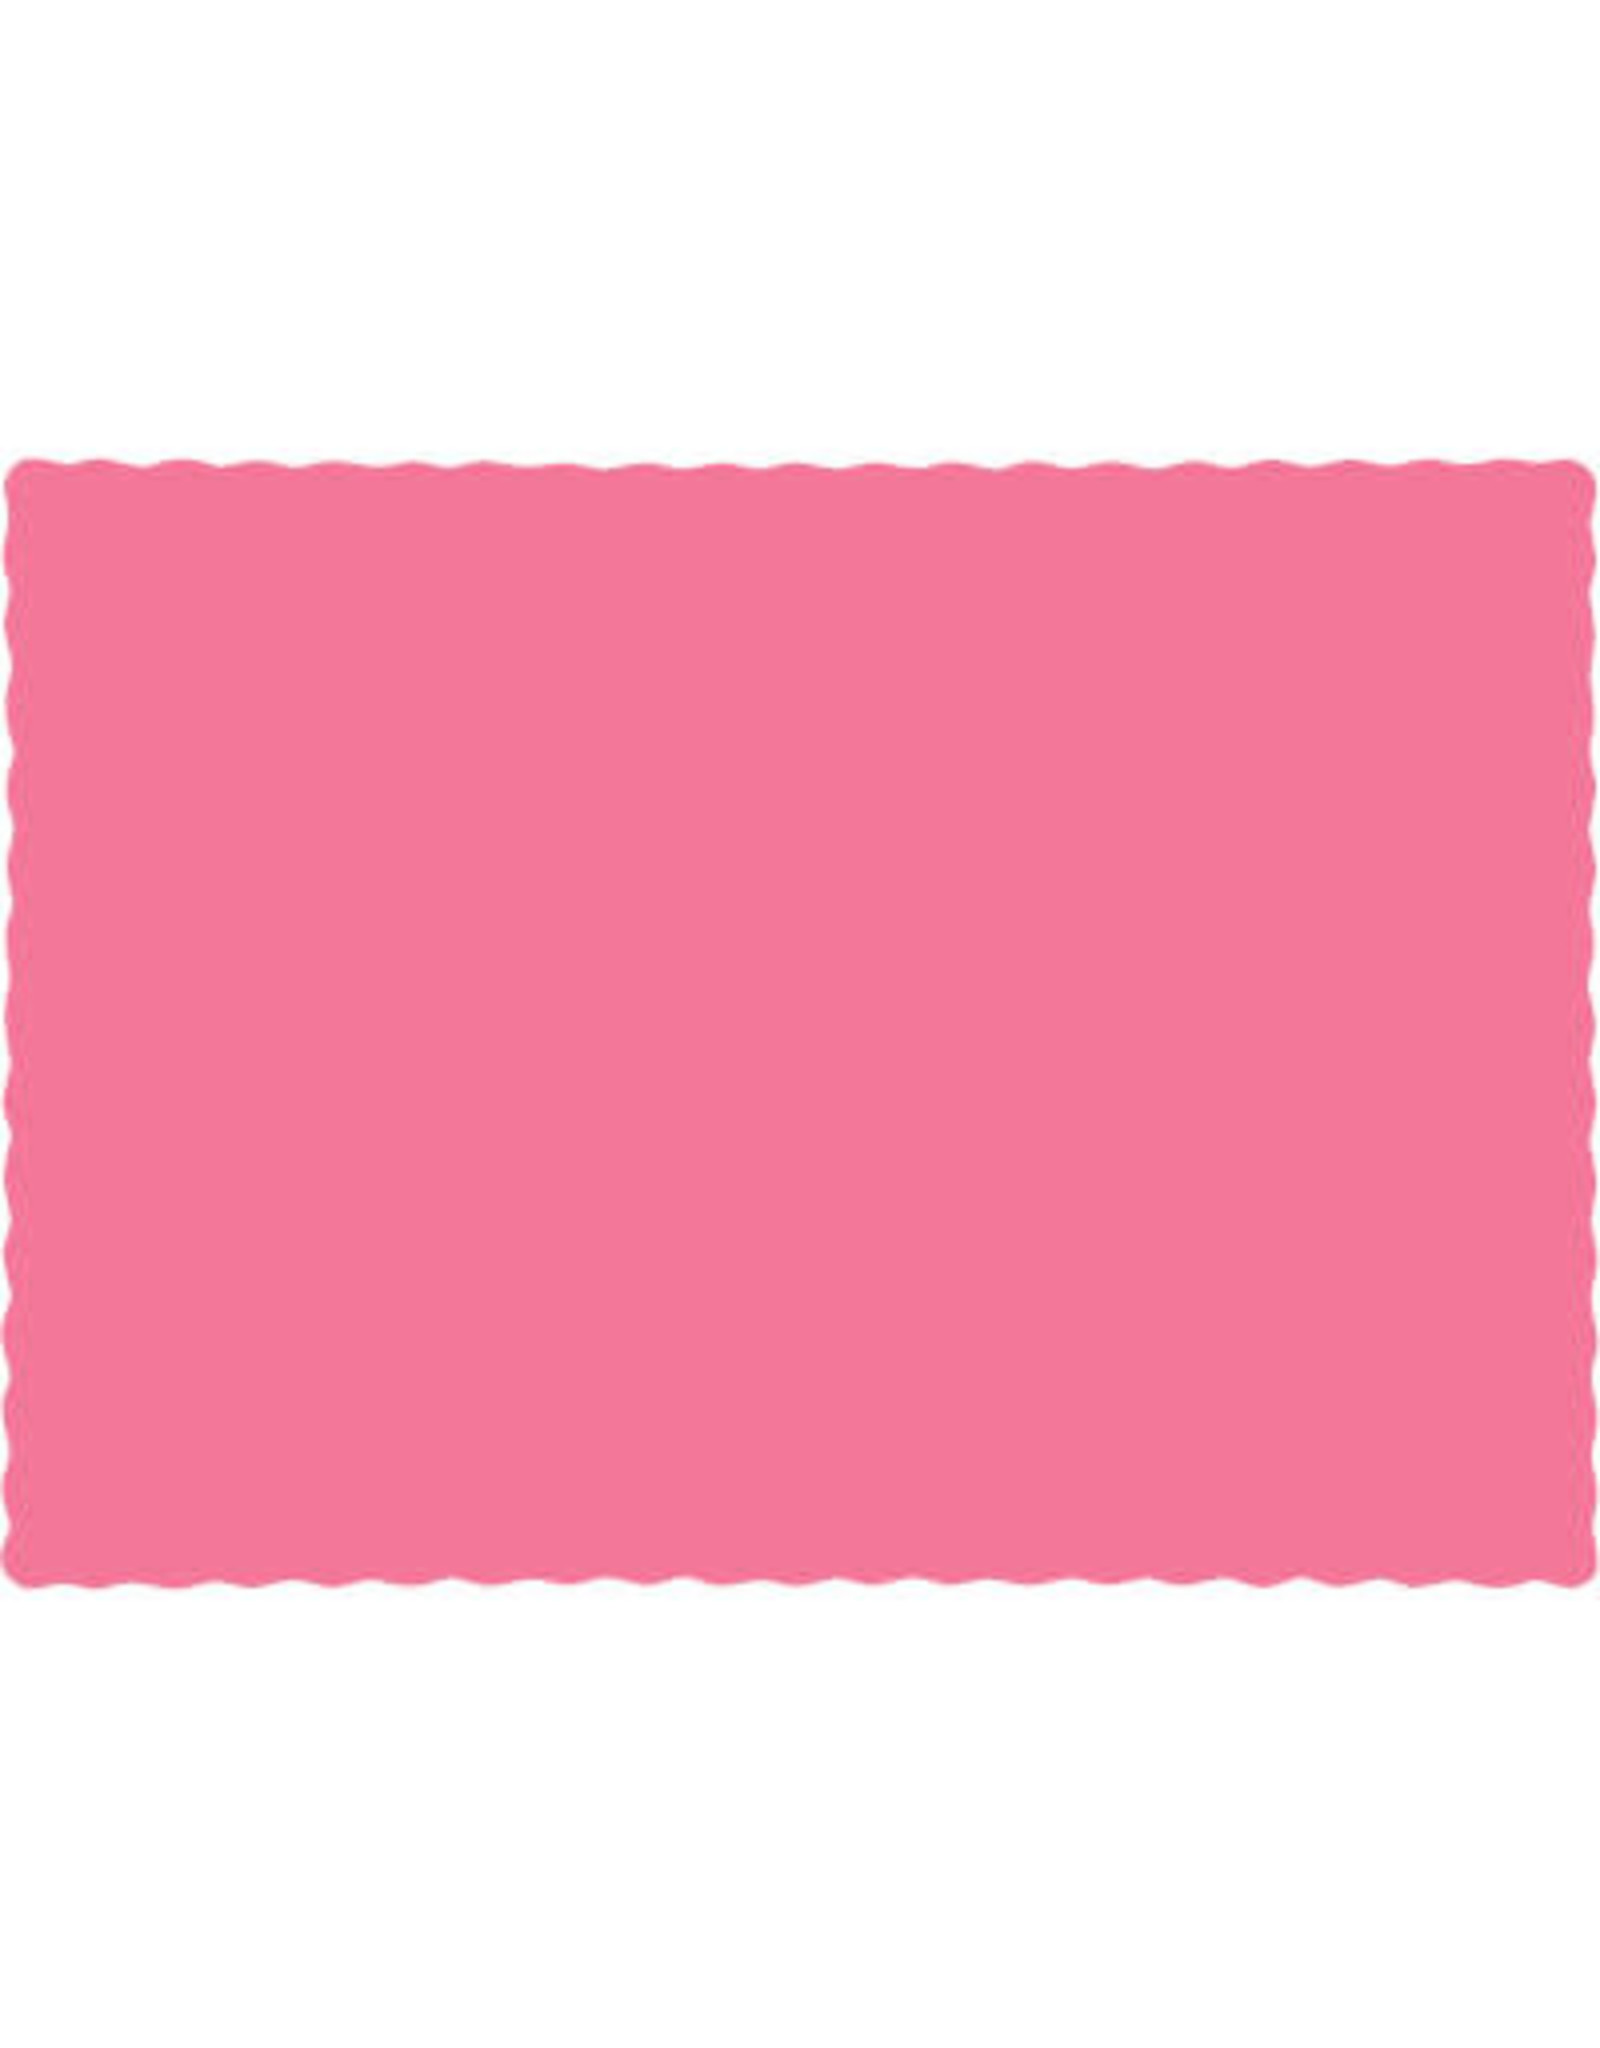 Touch of Color CANDY PINK PLACEMATS